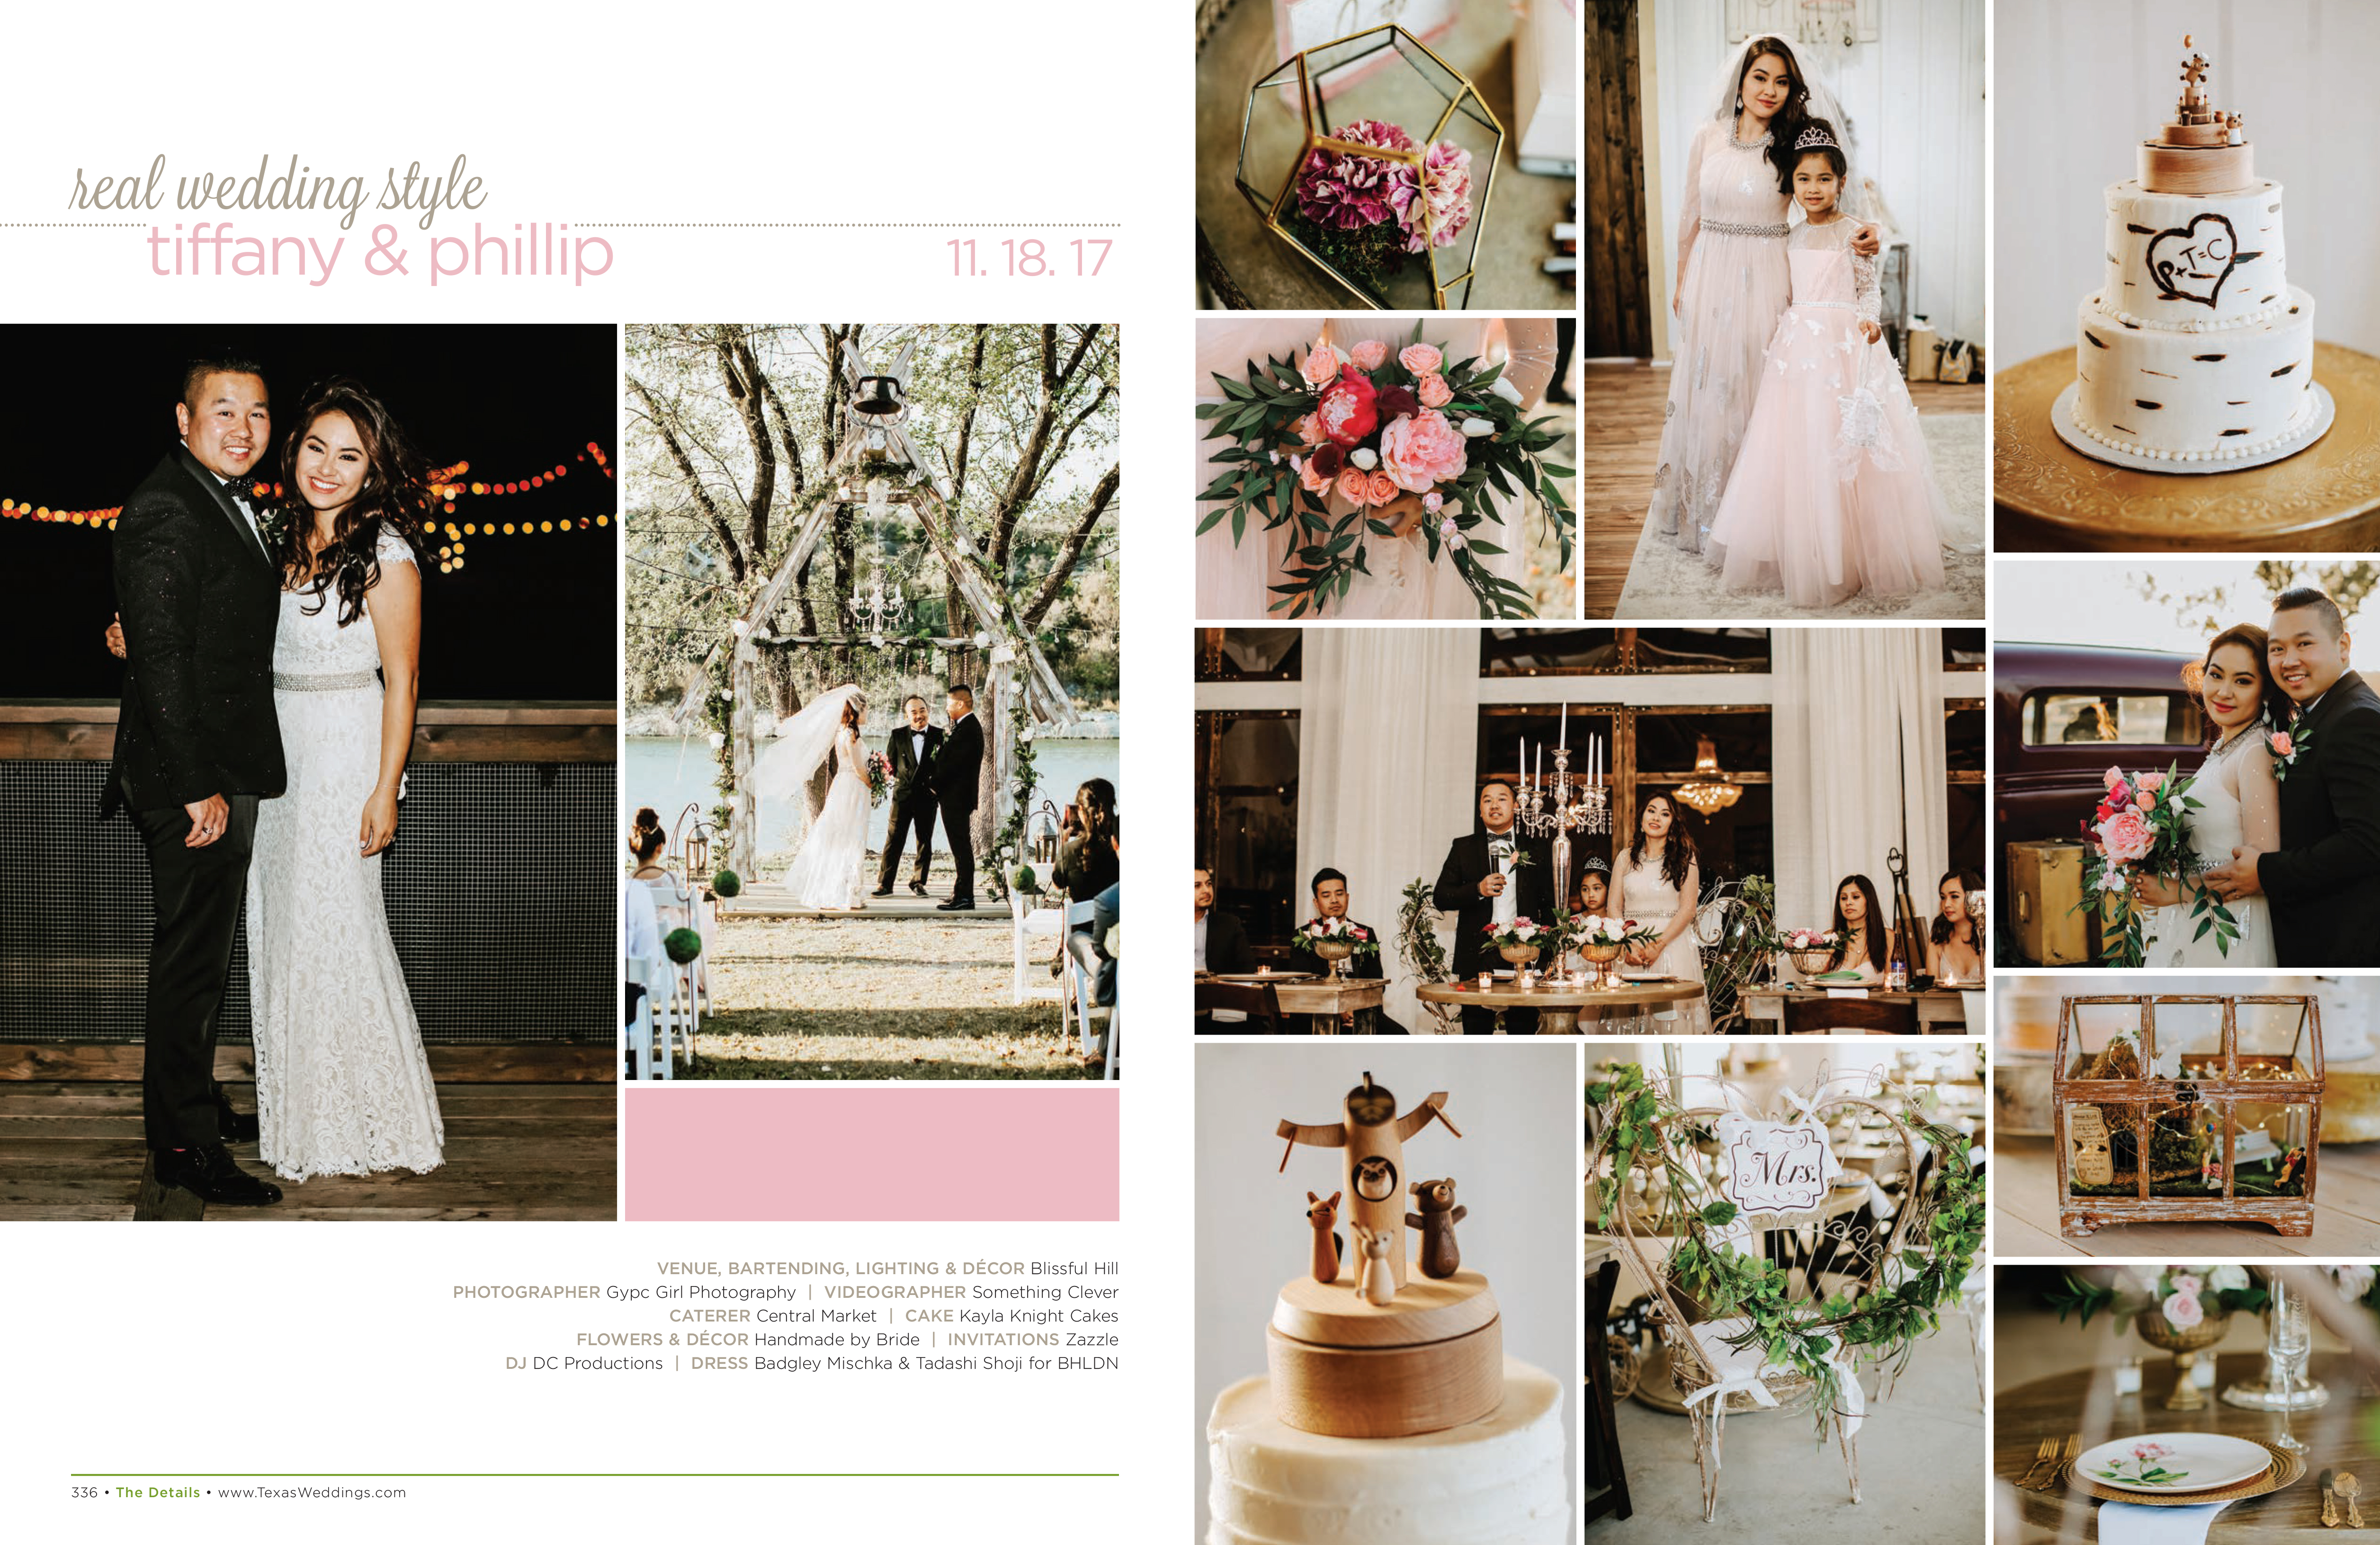 Tiffany & Phillip in their Real Wedding Page in the Spring/Summer 2018 Texas Wedding Guide